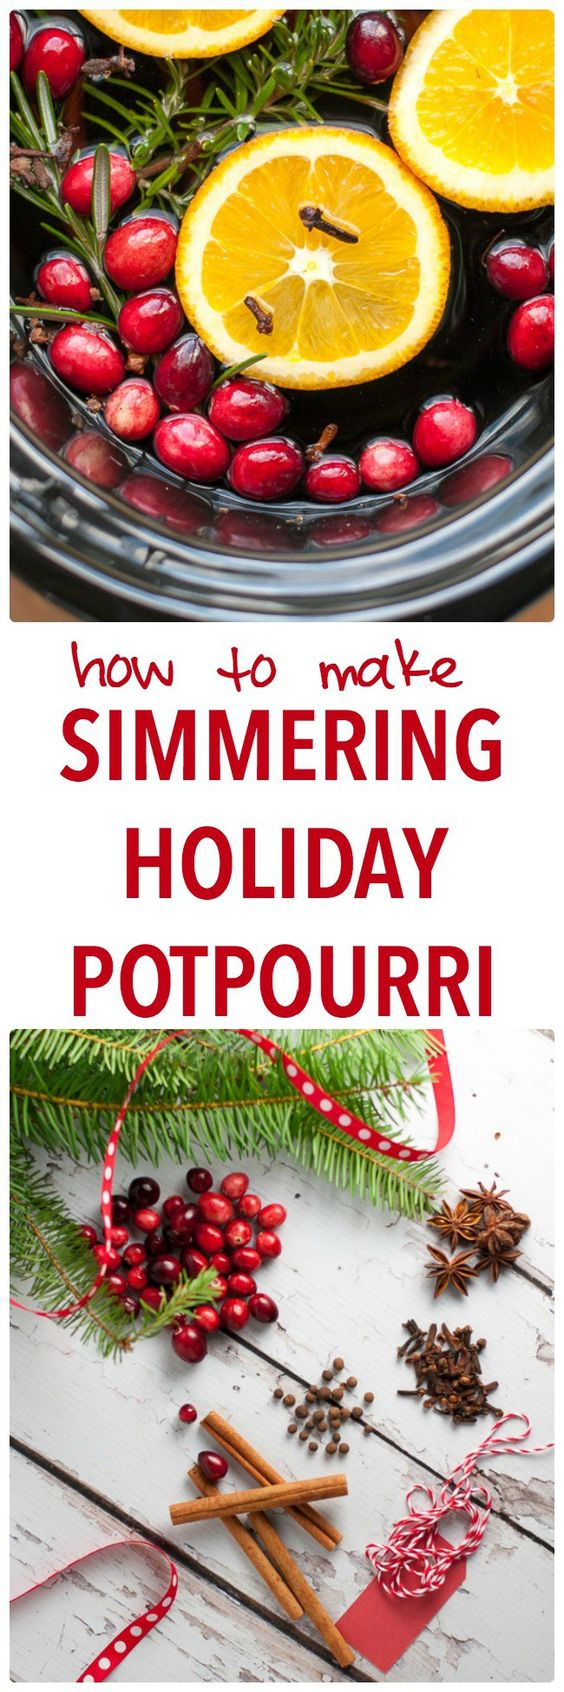 How to Make Simmering Holiday Potpourri on your stove top or in your ...